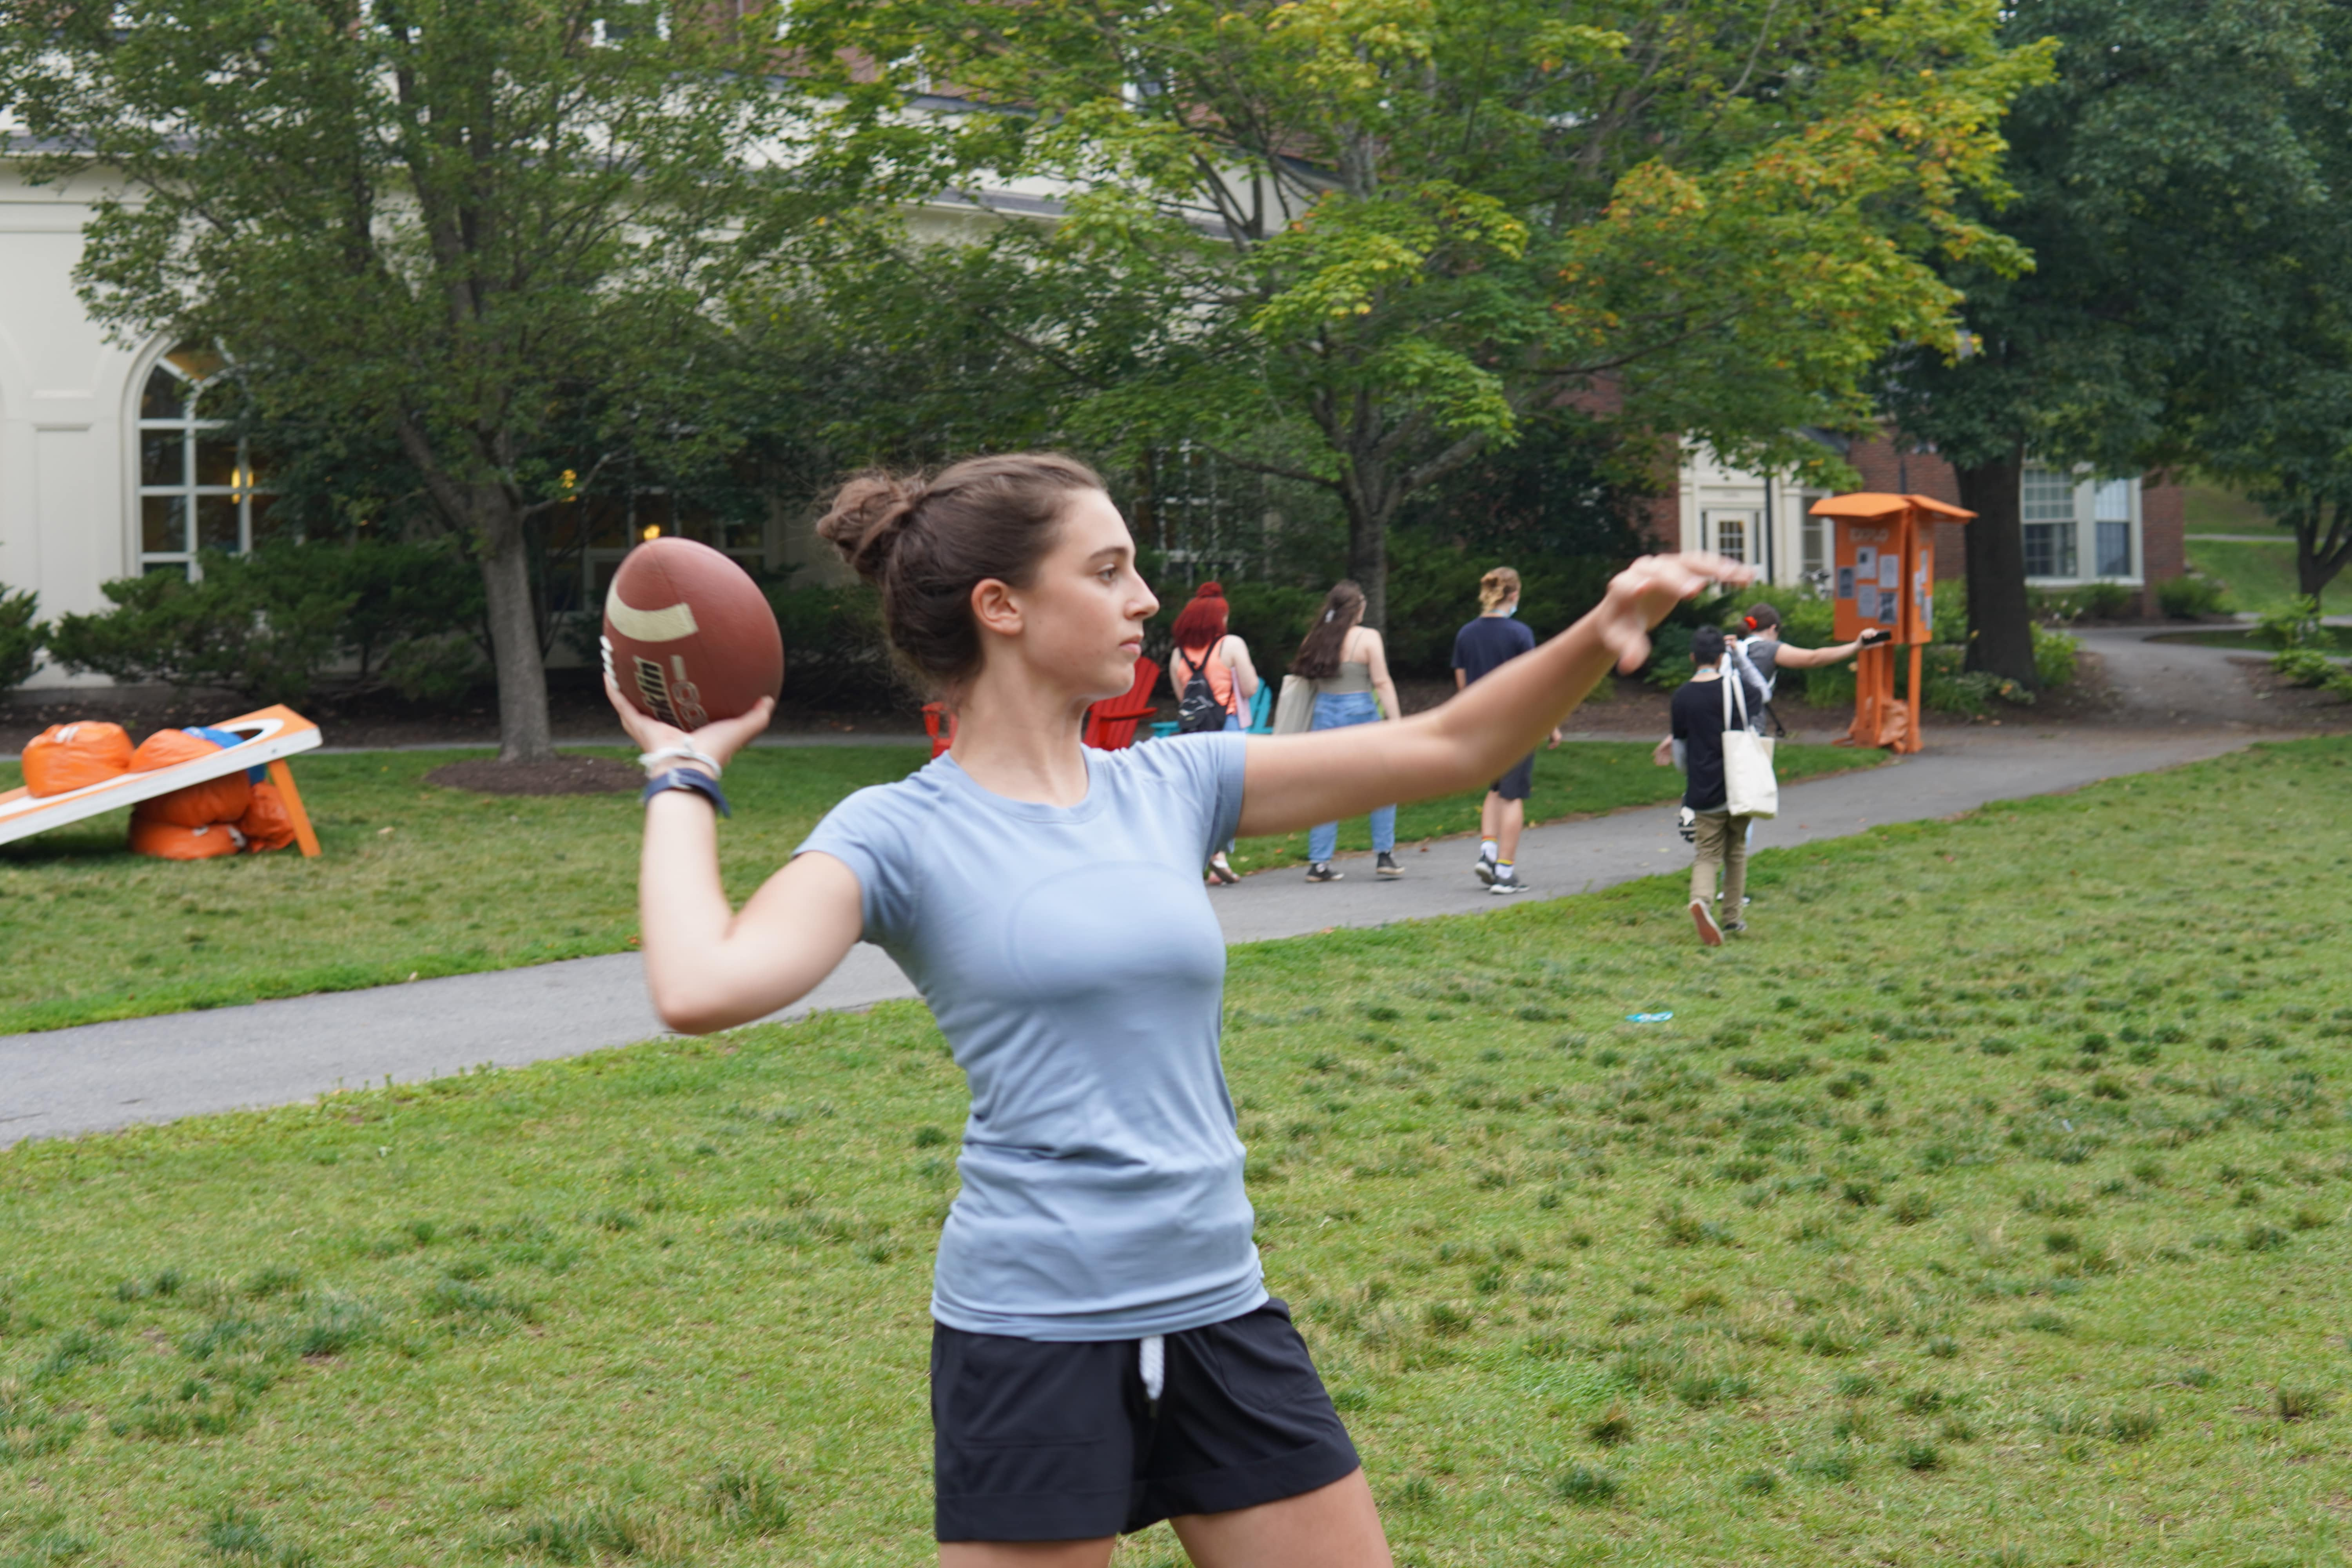 A student pulls their arm back before throwing a football.